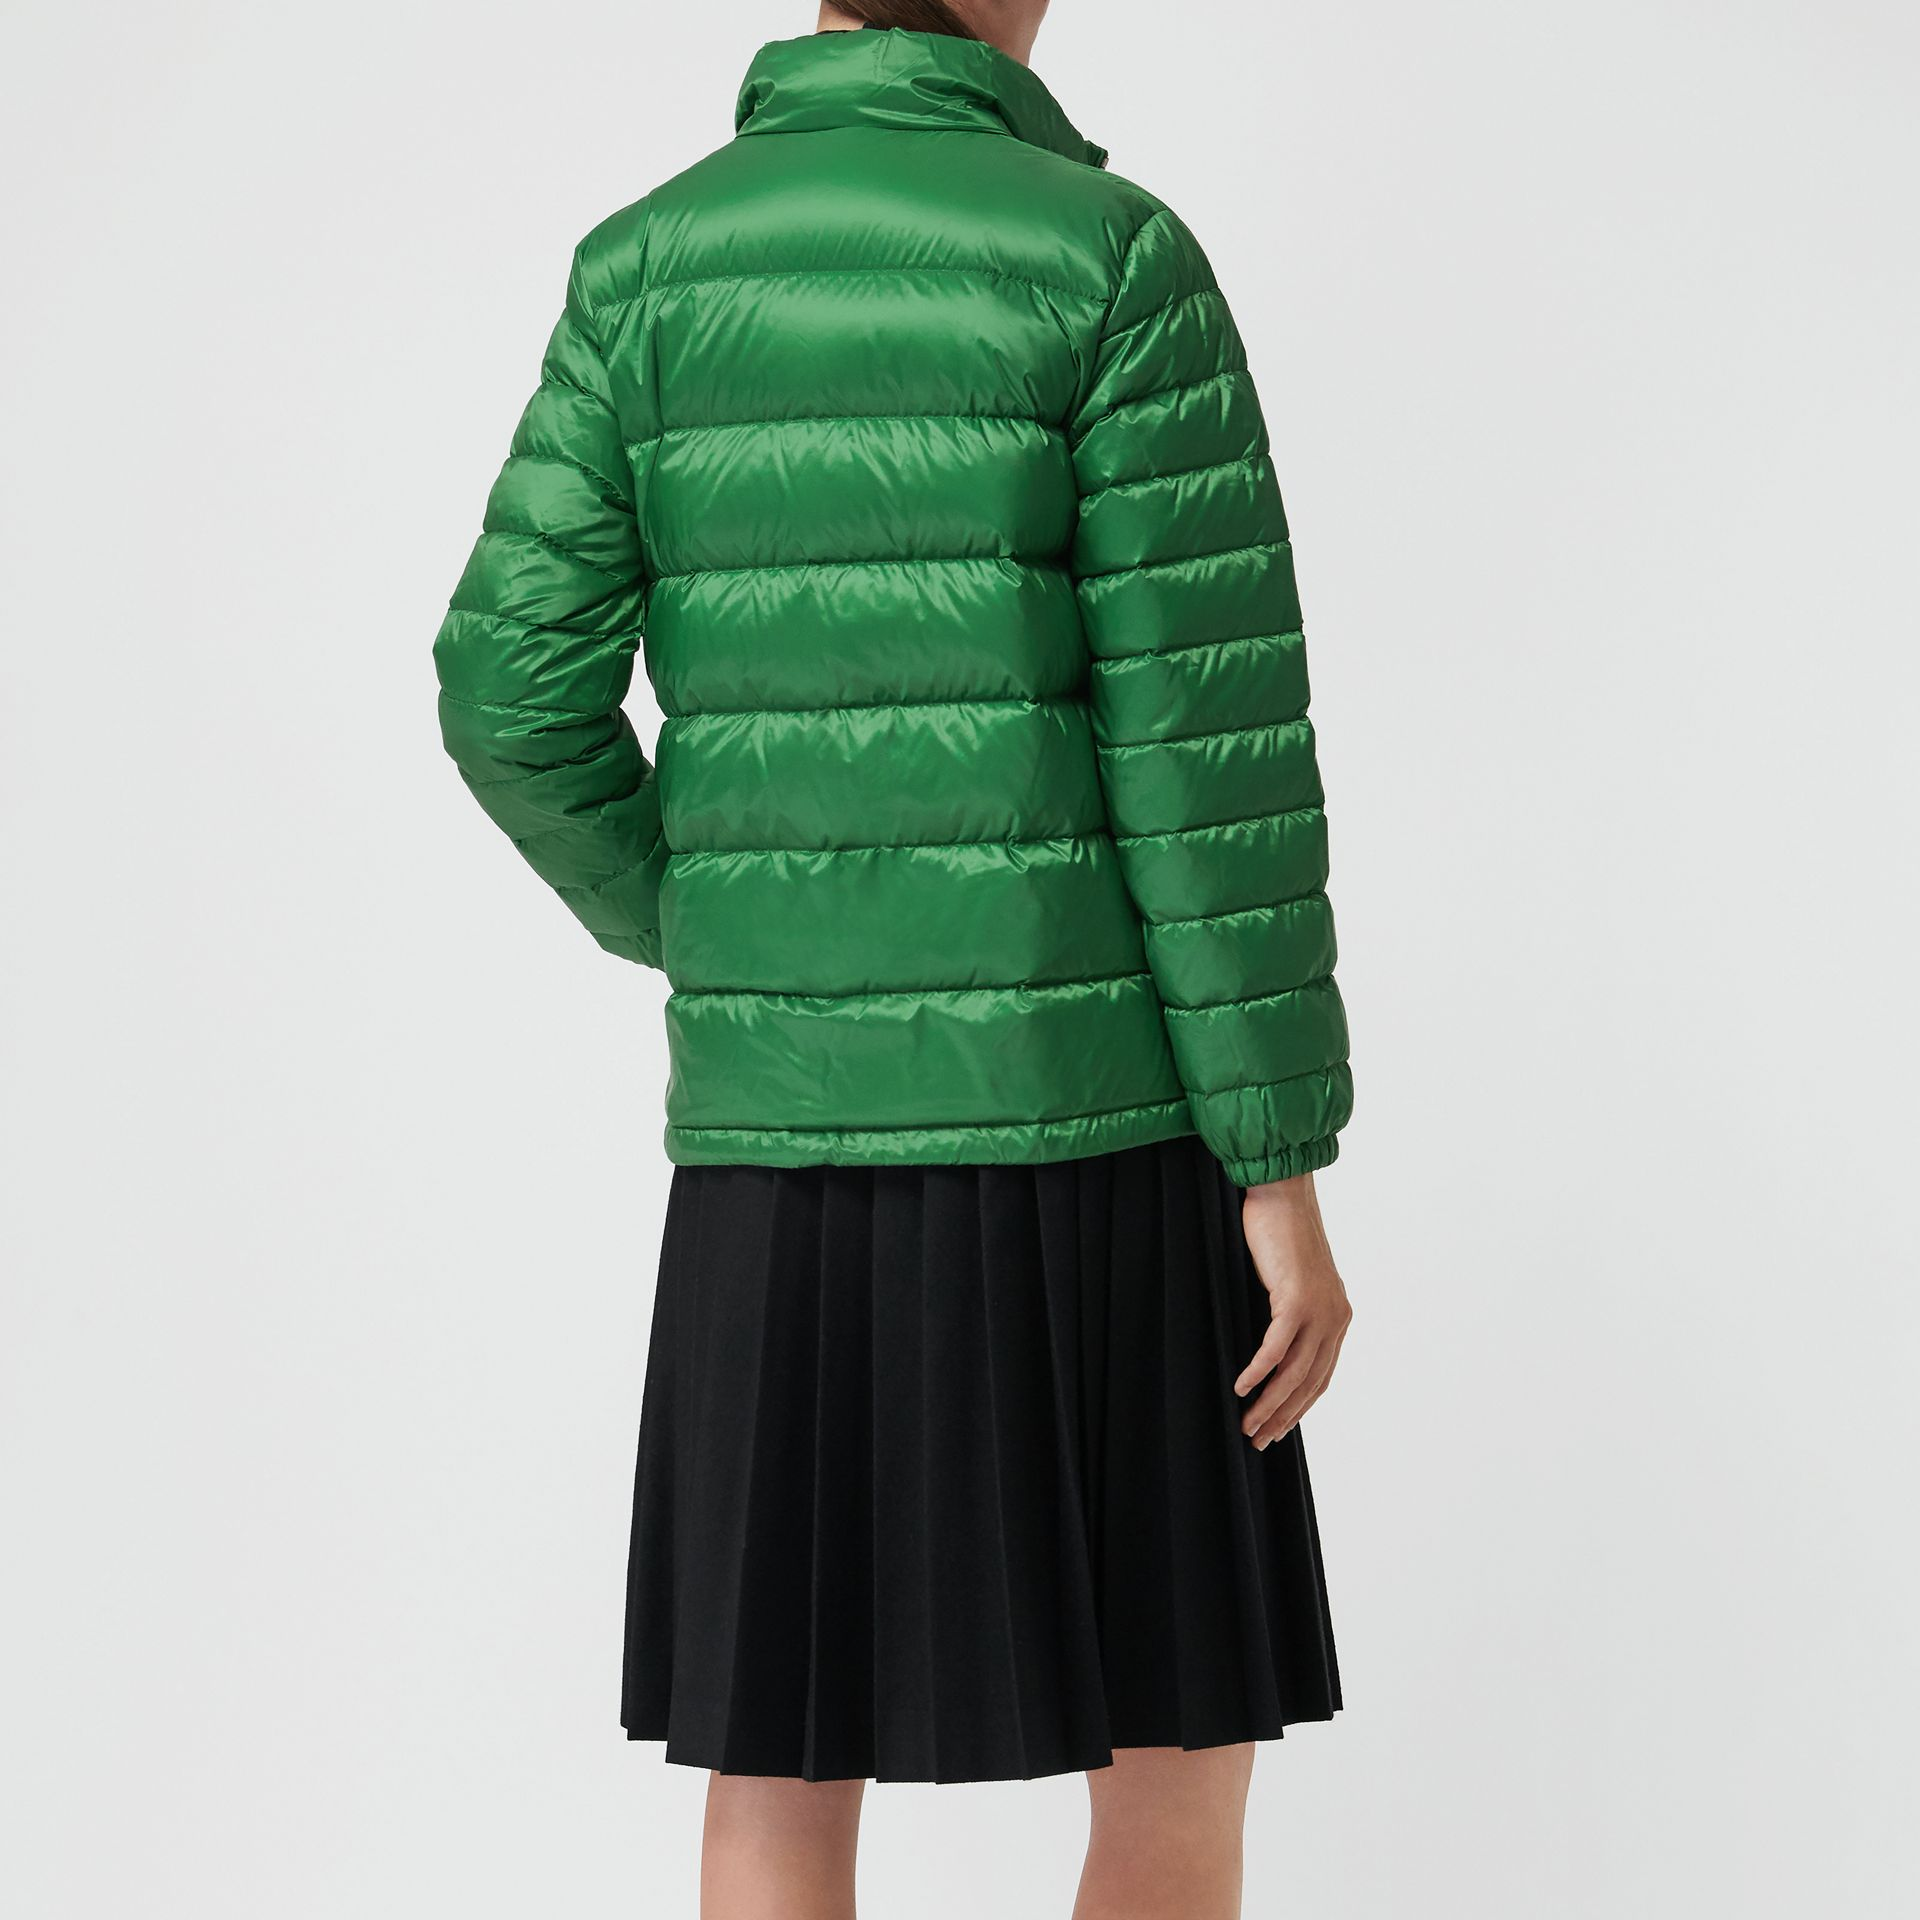 Down-filled Puffer Jacket in Emerald Green - Women | Burberry - gallery image 2